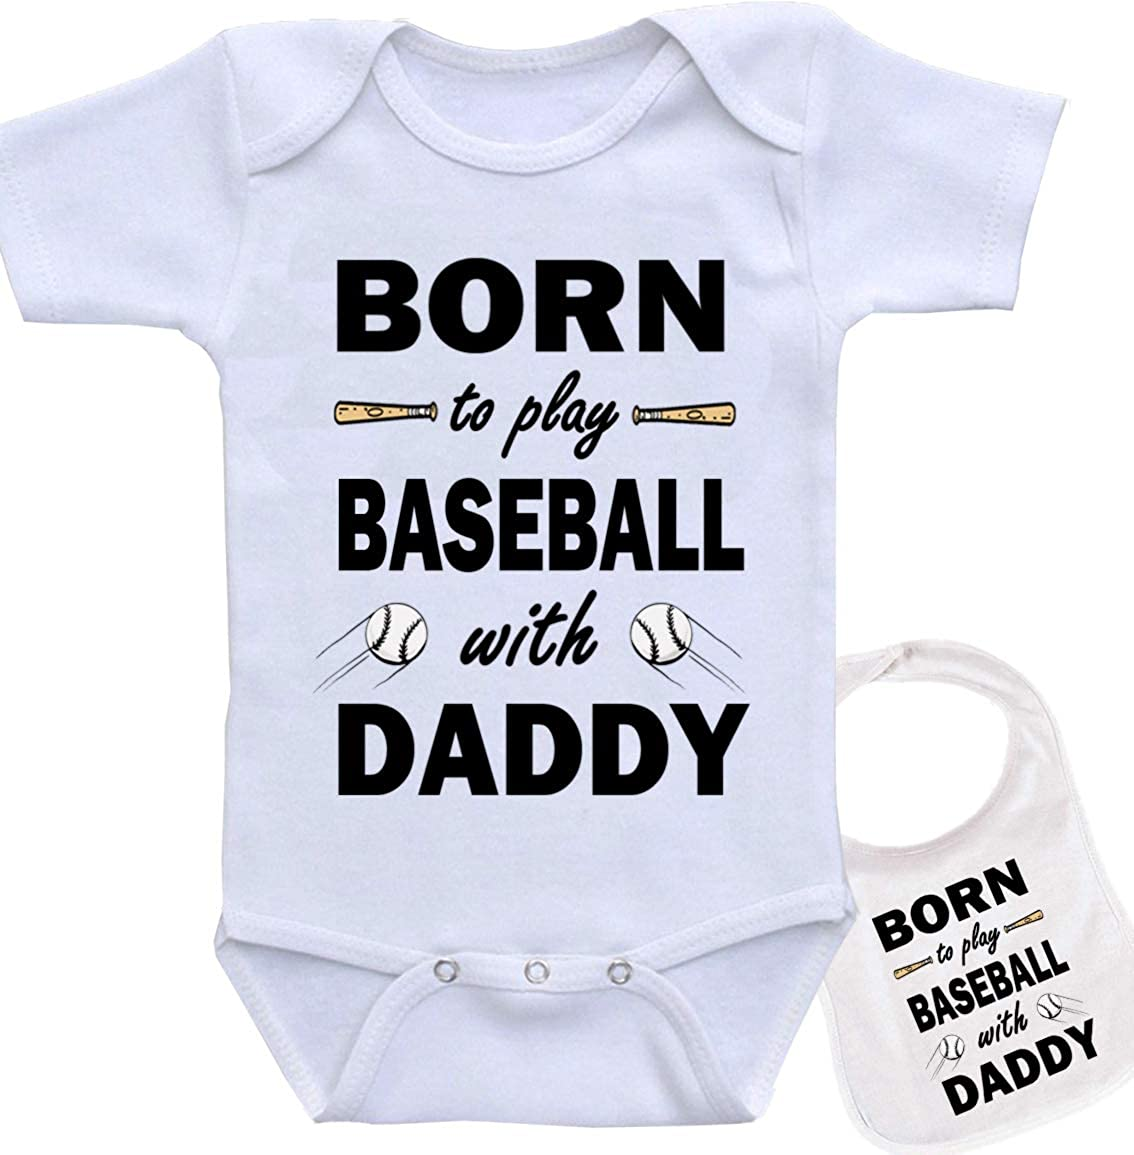 Matching Father Baby Gift Set Mens T Shirt /& Baby Bodysuit Born to Play Baseball with Daddy White Medium /& Newborn